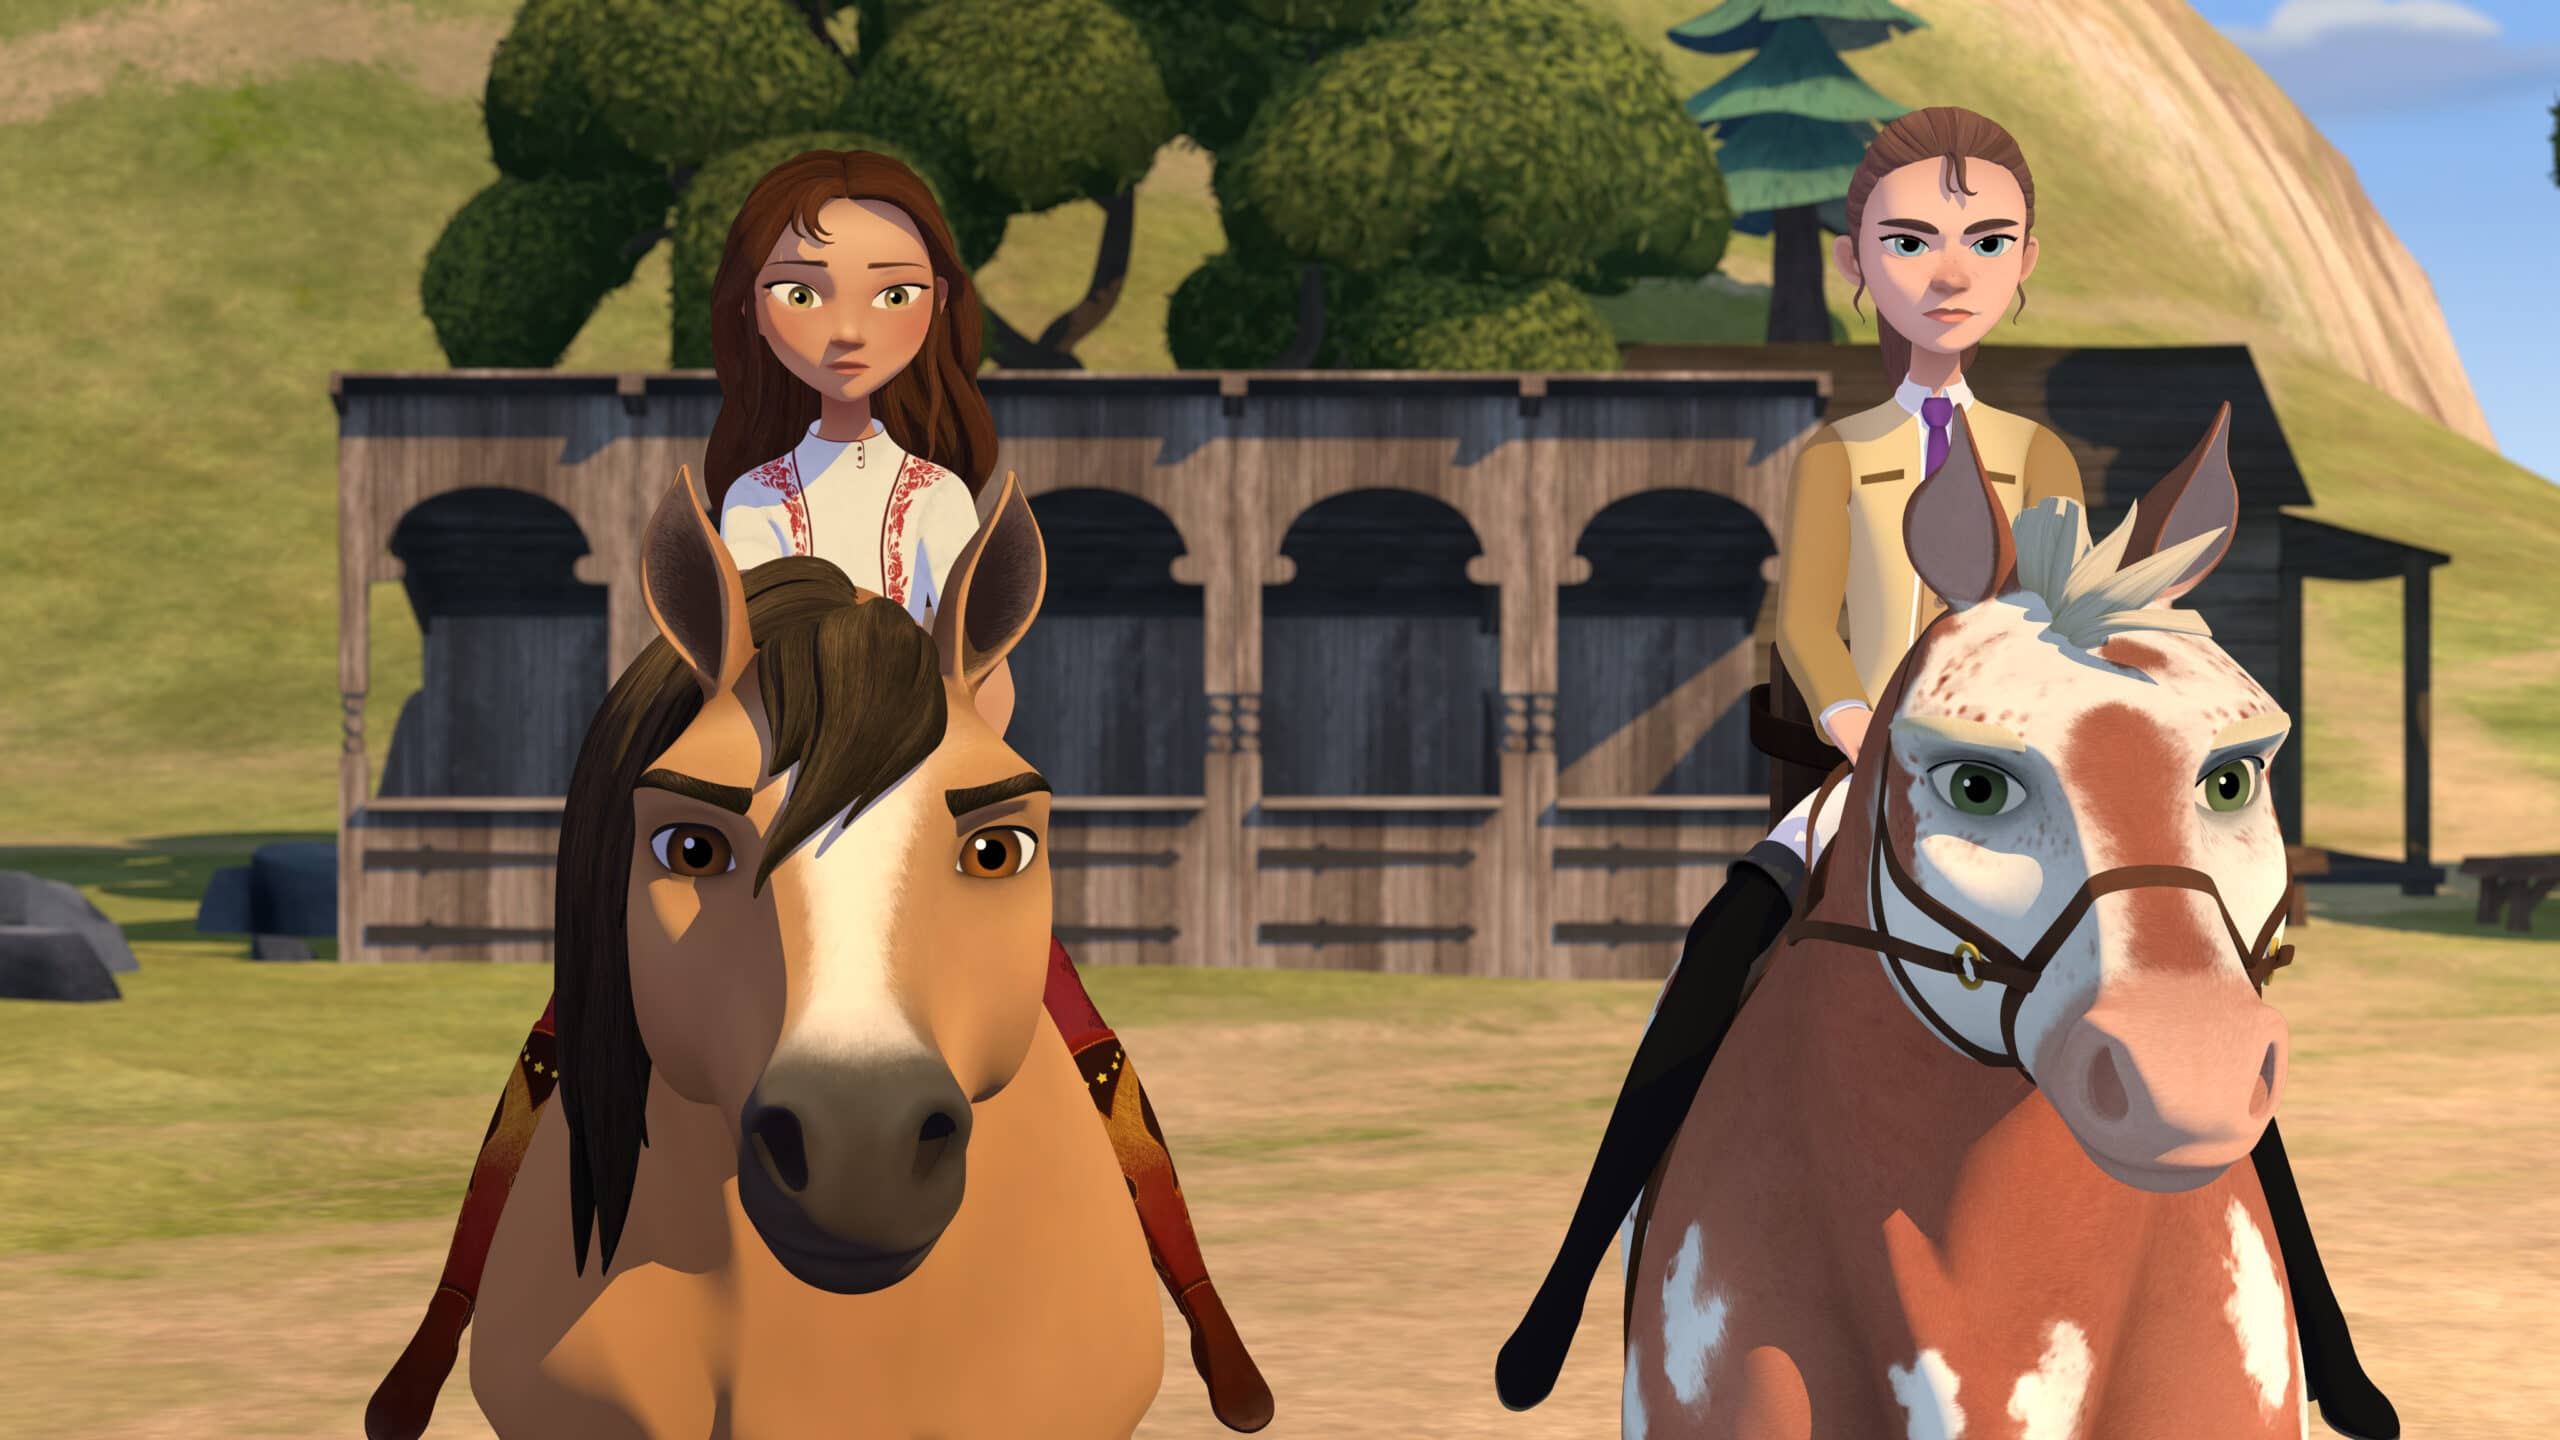 Spirit Riding Academy Part 2 Spirit. Inspired by the 2002 Oscar-nominated film ?Spirit: Stallion of the Cimarron,DreamWorks Spirit Riding Free?: Riding Academy Part 2takes place during their final term as Foals, Lucky, Pru & Abigail have finally adjusted to life at Palomino Bluffs Riding Academy when Mariciela announces that she and Mystery will be joining them!